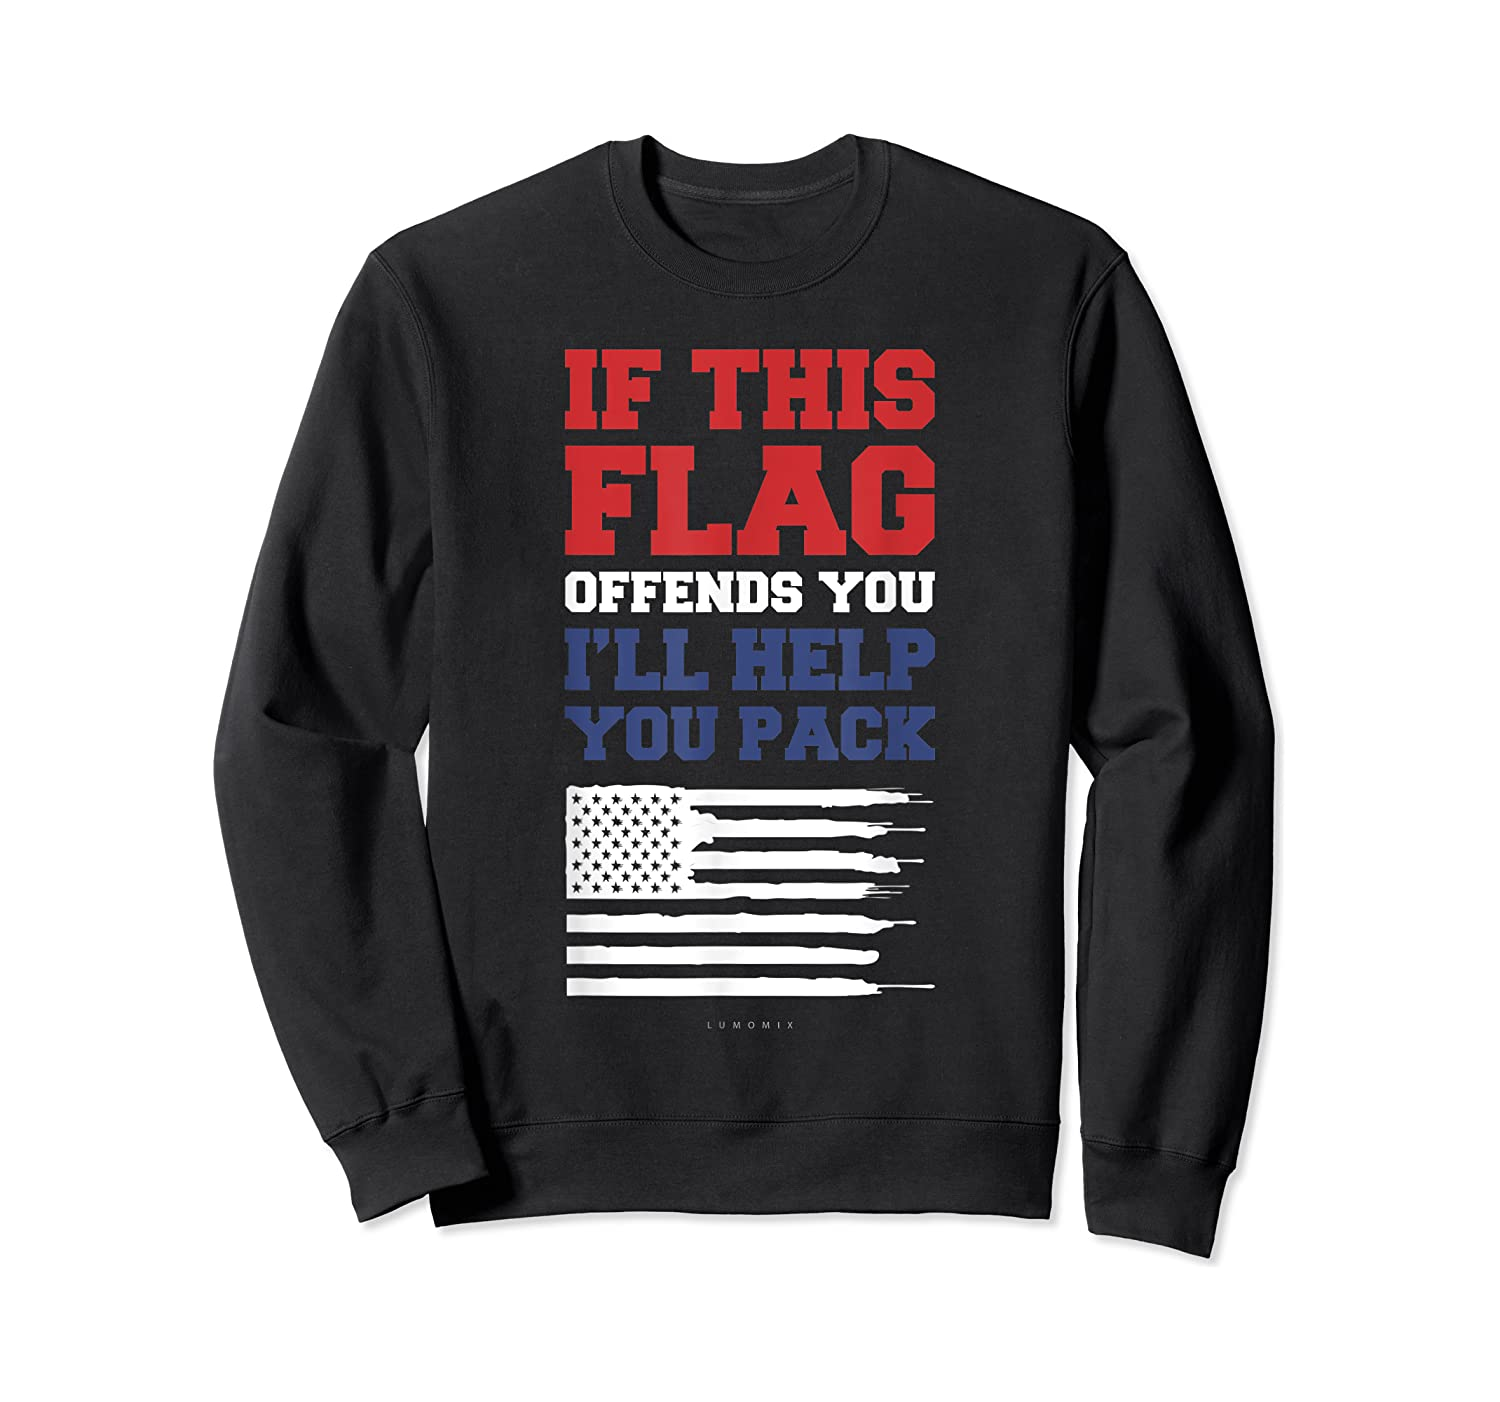 Patriotic Shirts - If This Flag Offends You Help You Pack T-shirt Crewneck Sweater